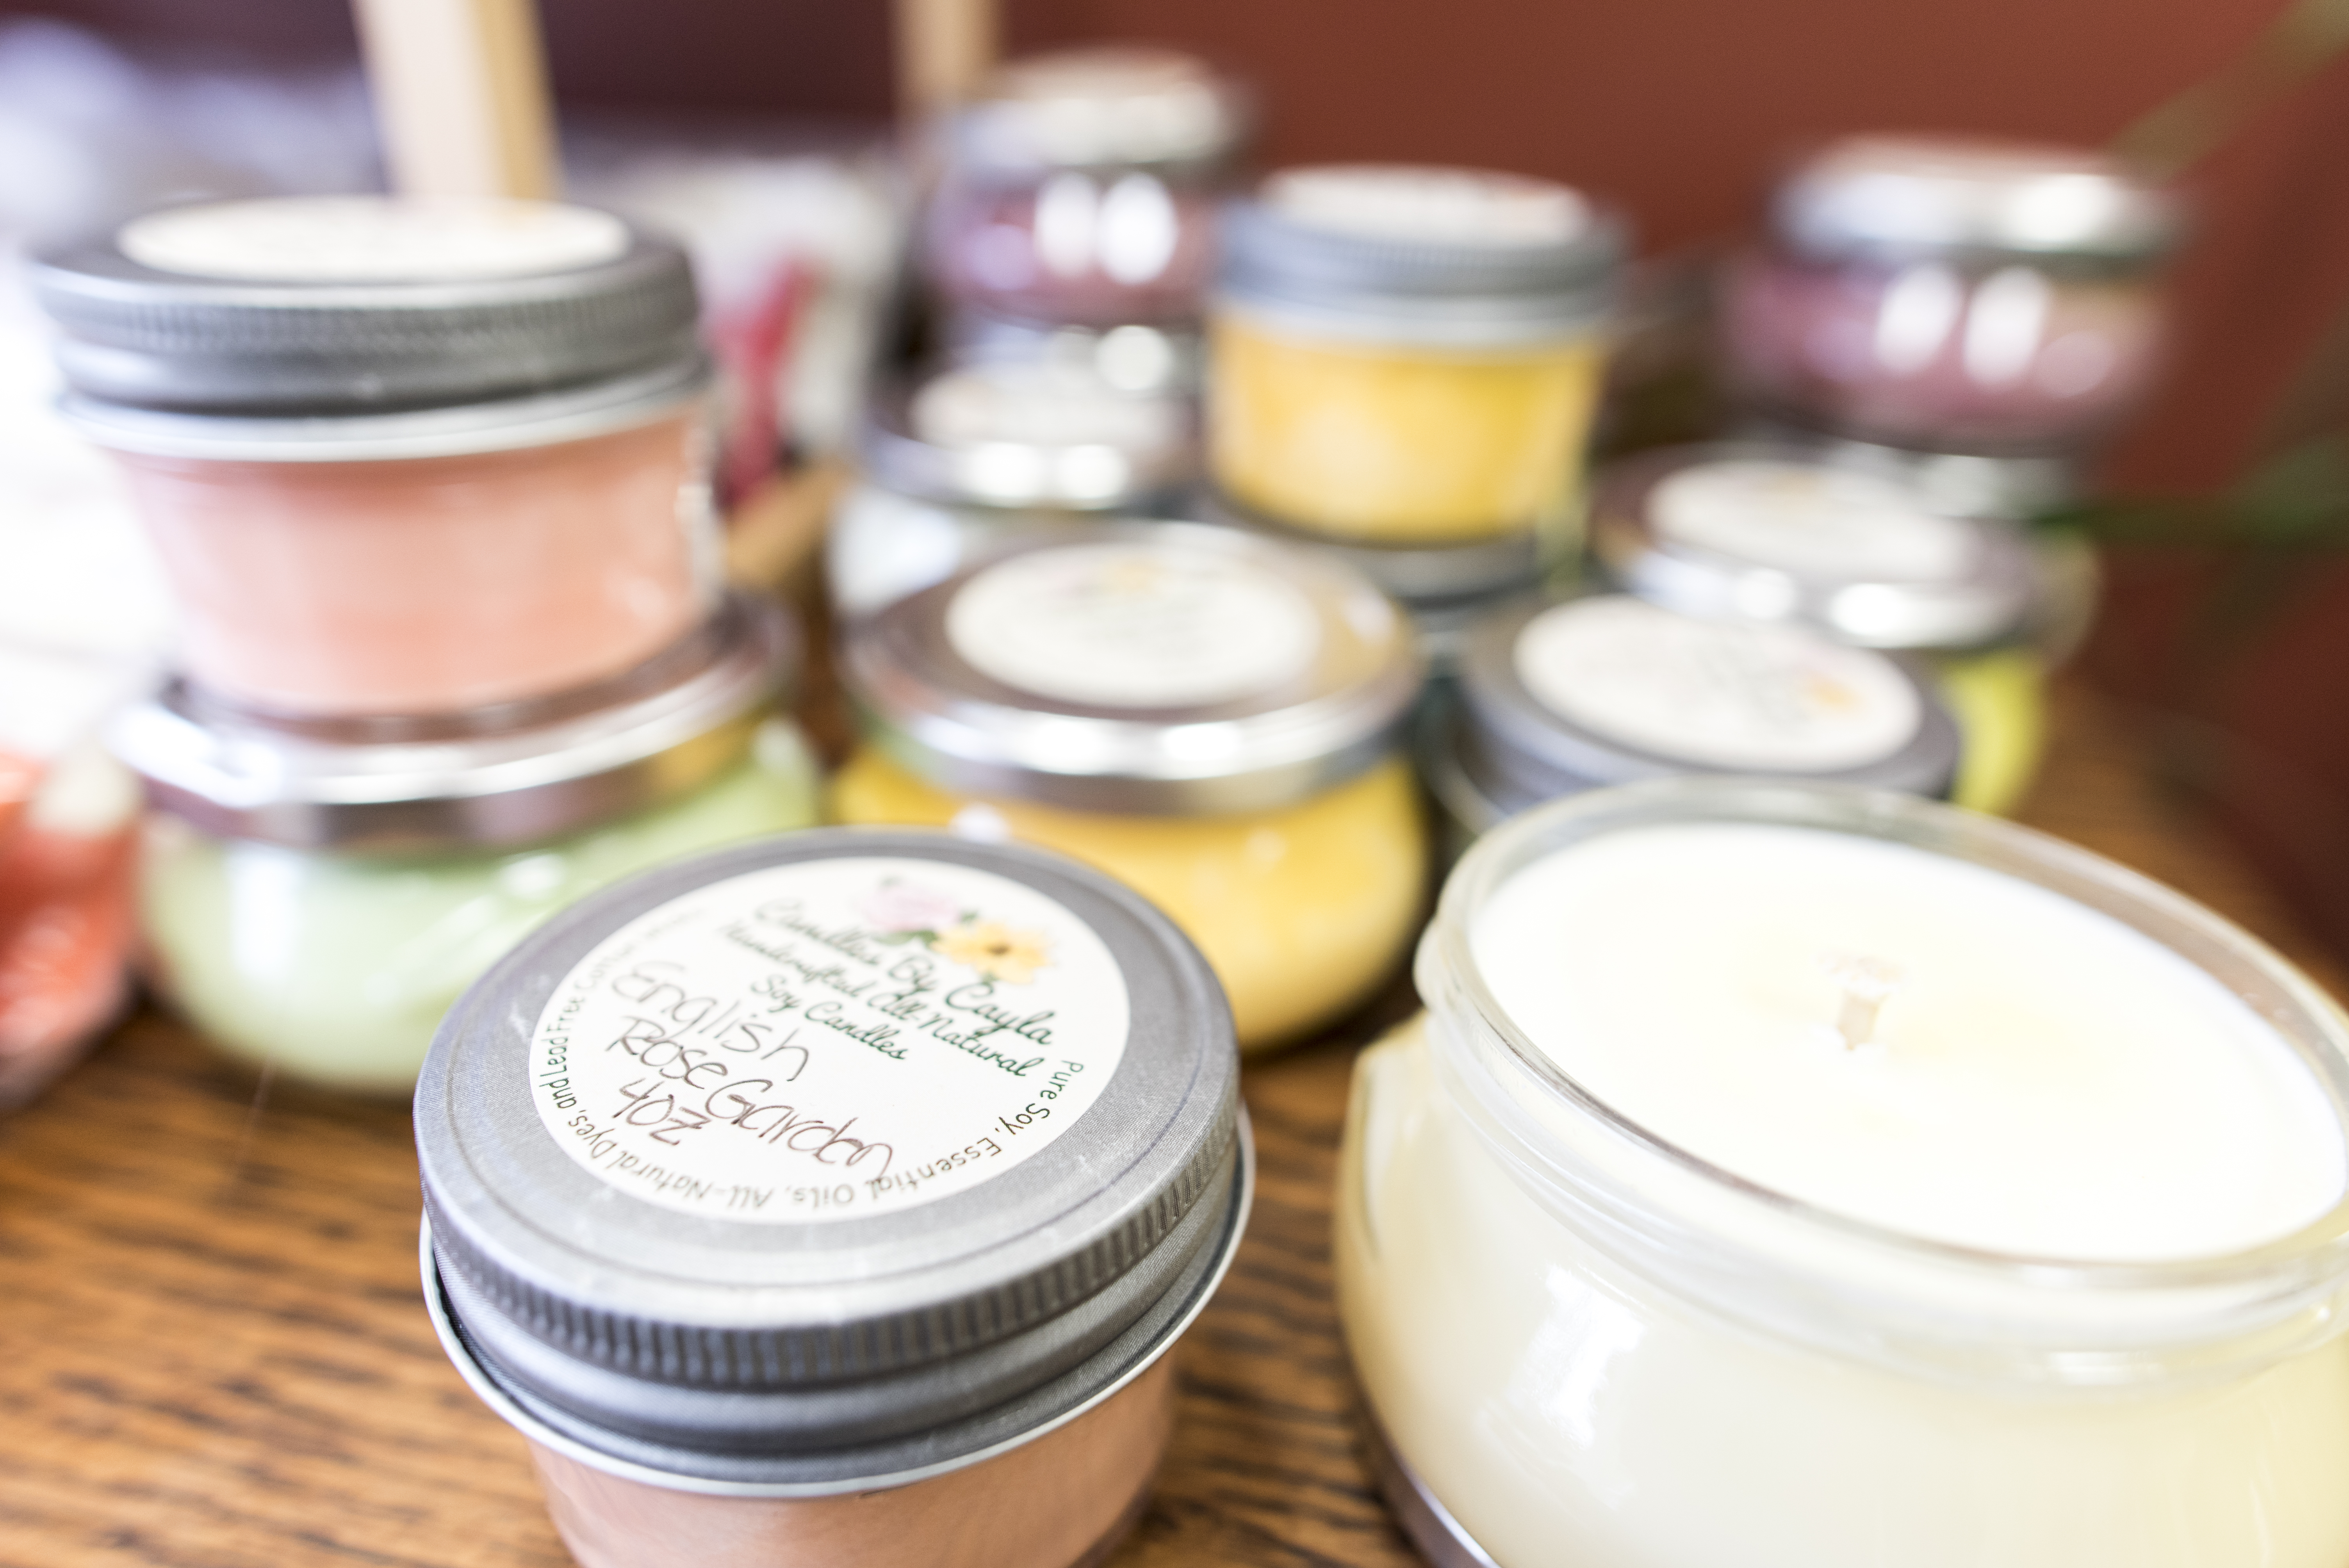 boutique candles by cayla